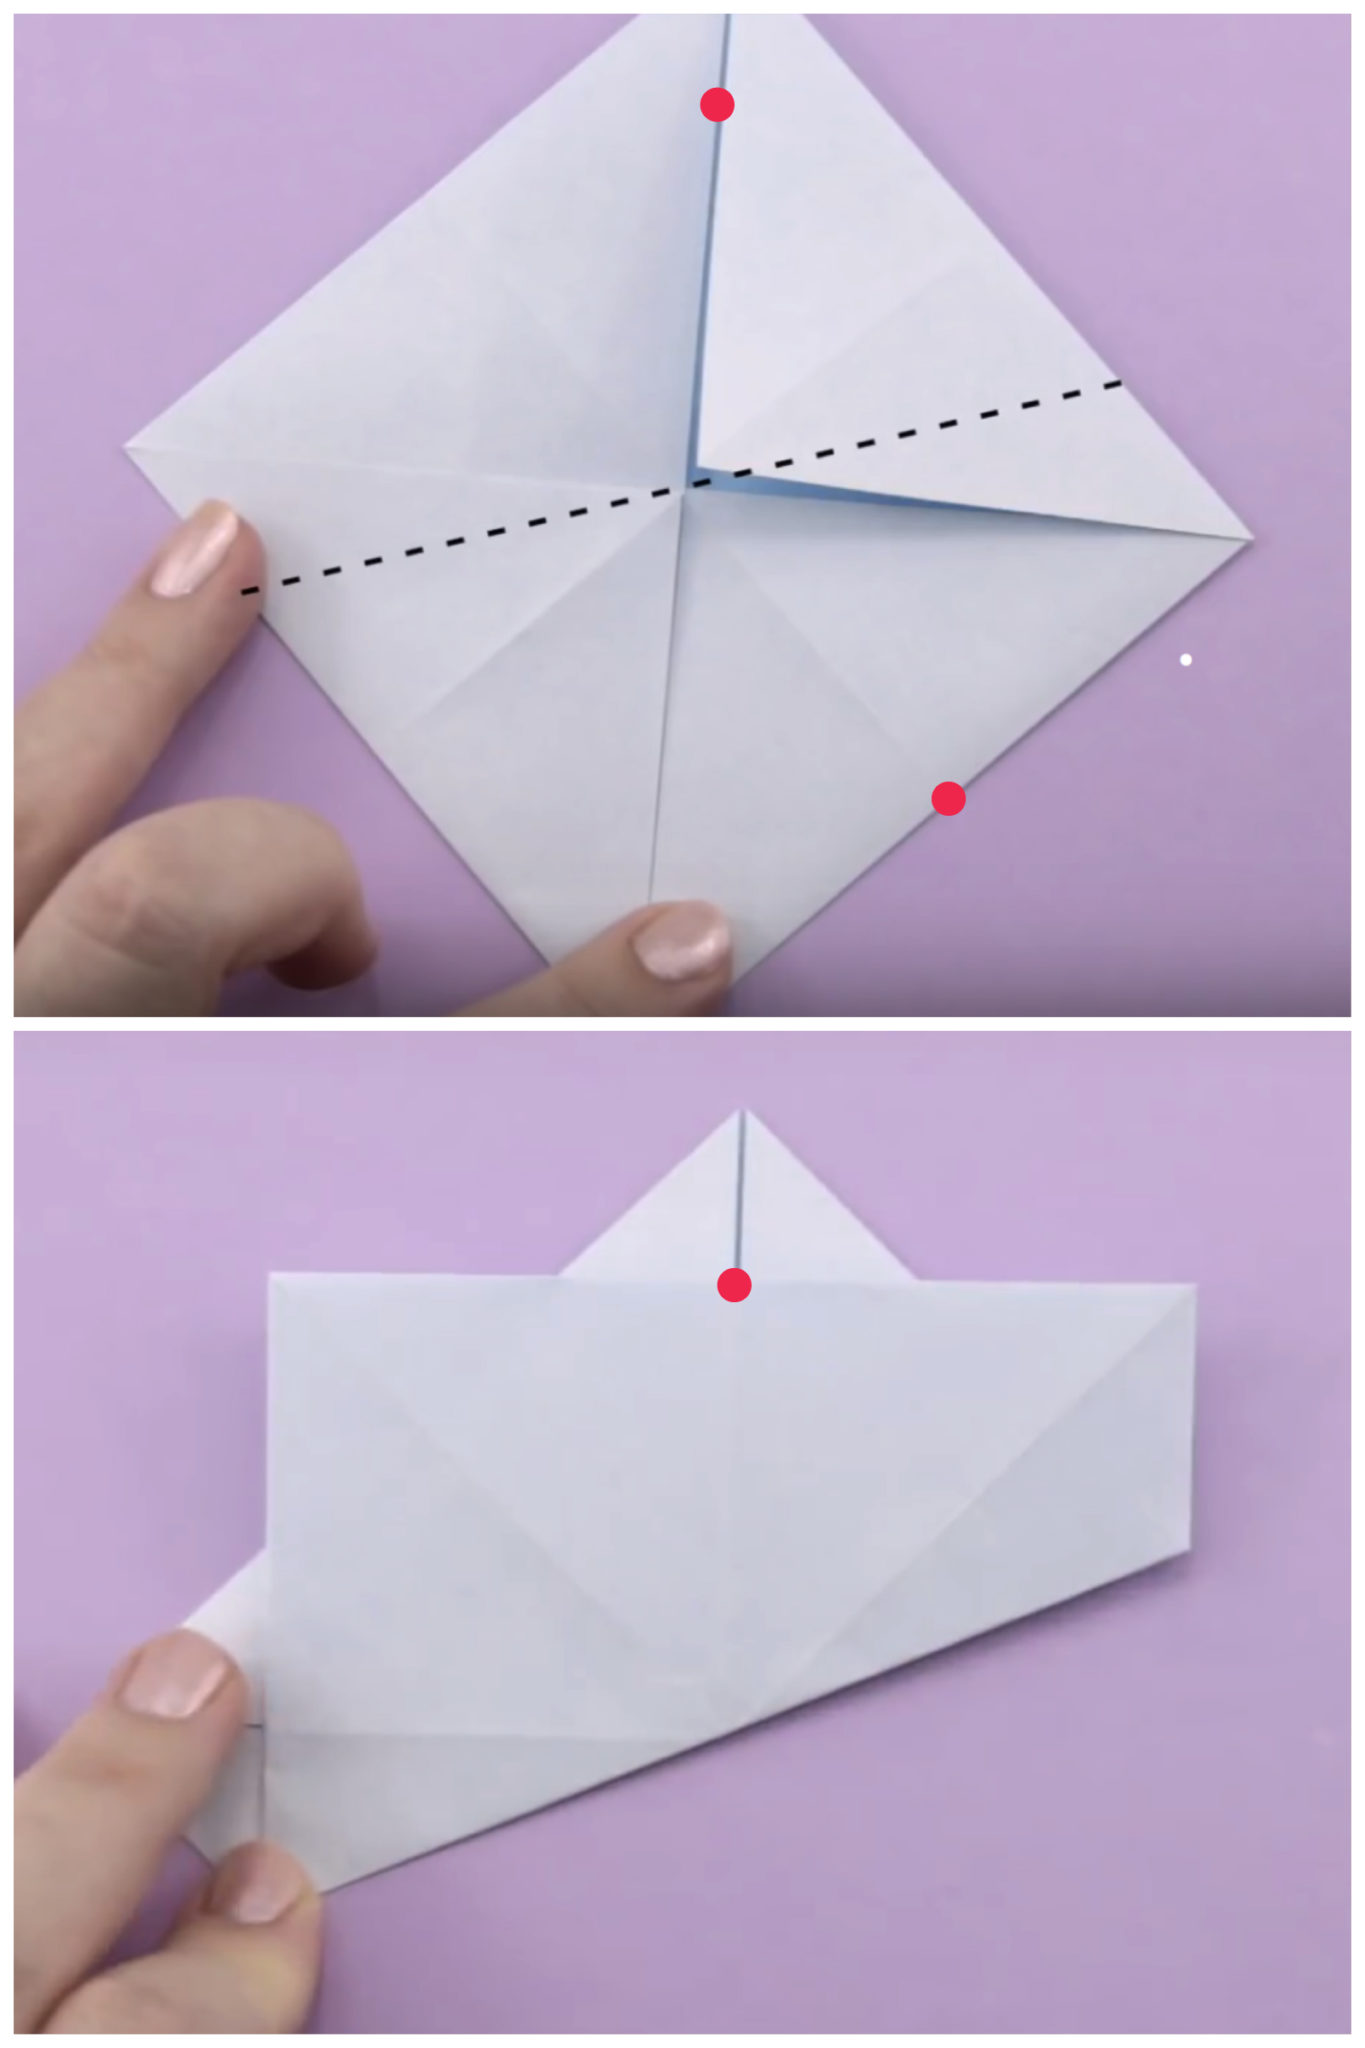 where to buy origami star paper Find great deals on ebay for origami paper and japanese origami paper see more like this 80pcs funny origami lucky star paper strips folding buy it now type.